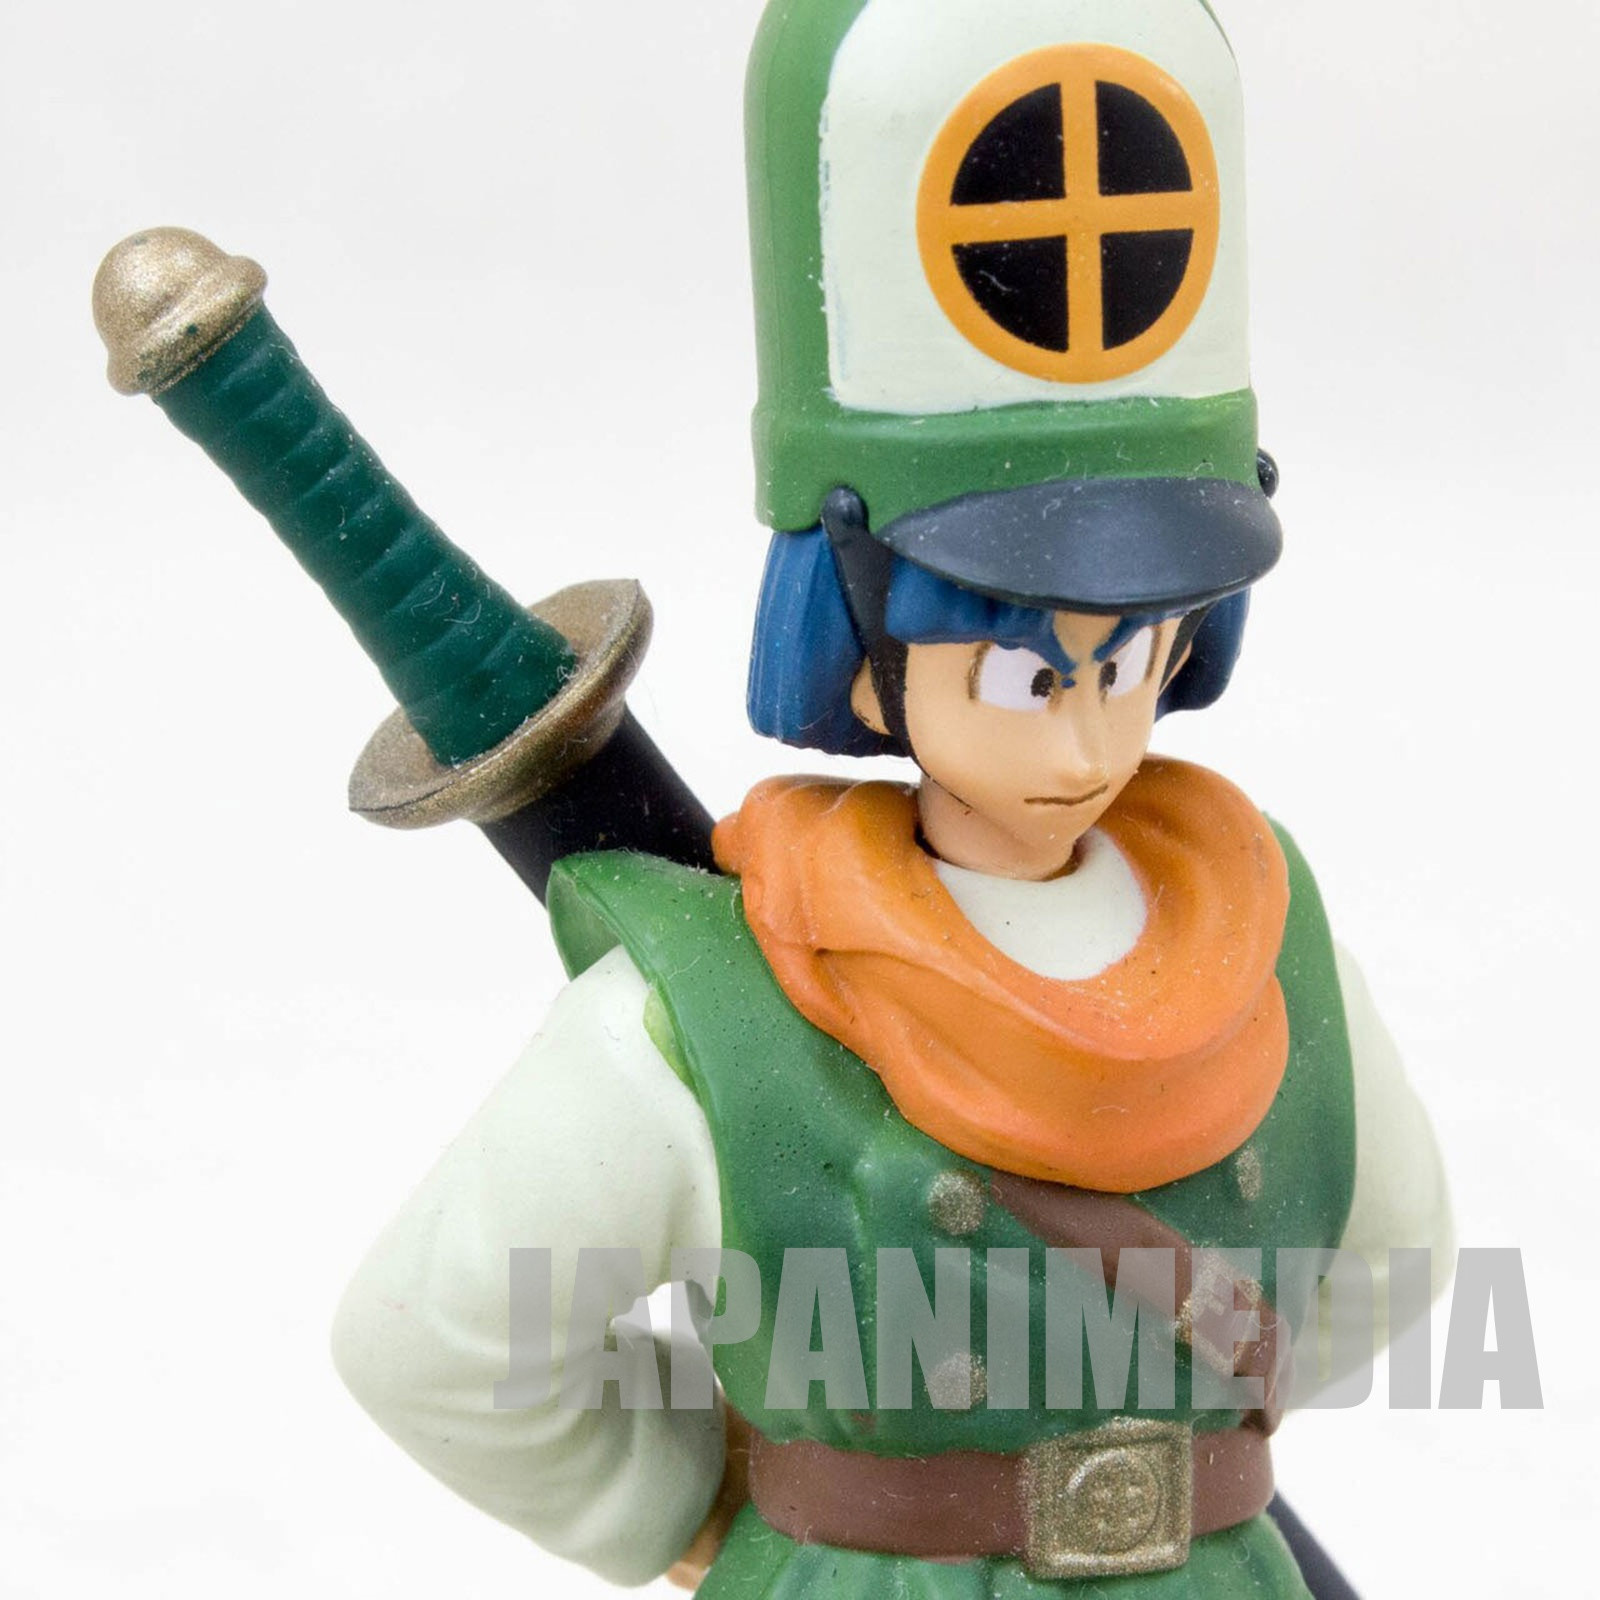 [Stand missing] Dragon Quest Chancellor Kiryl Clift Character Figure Collection JAPAN GAME